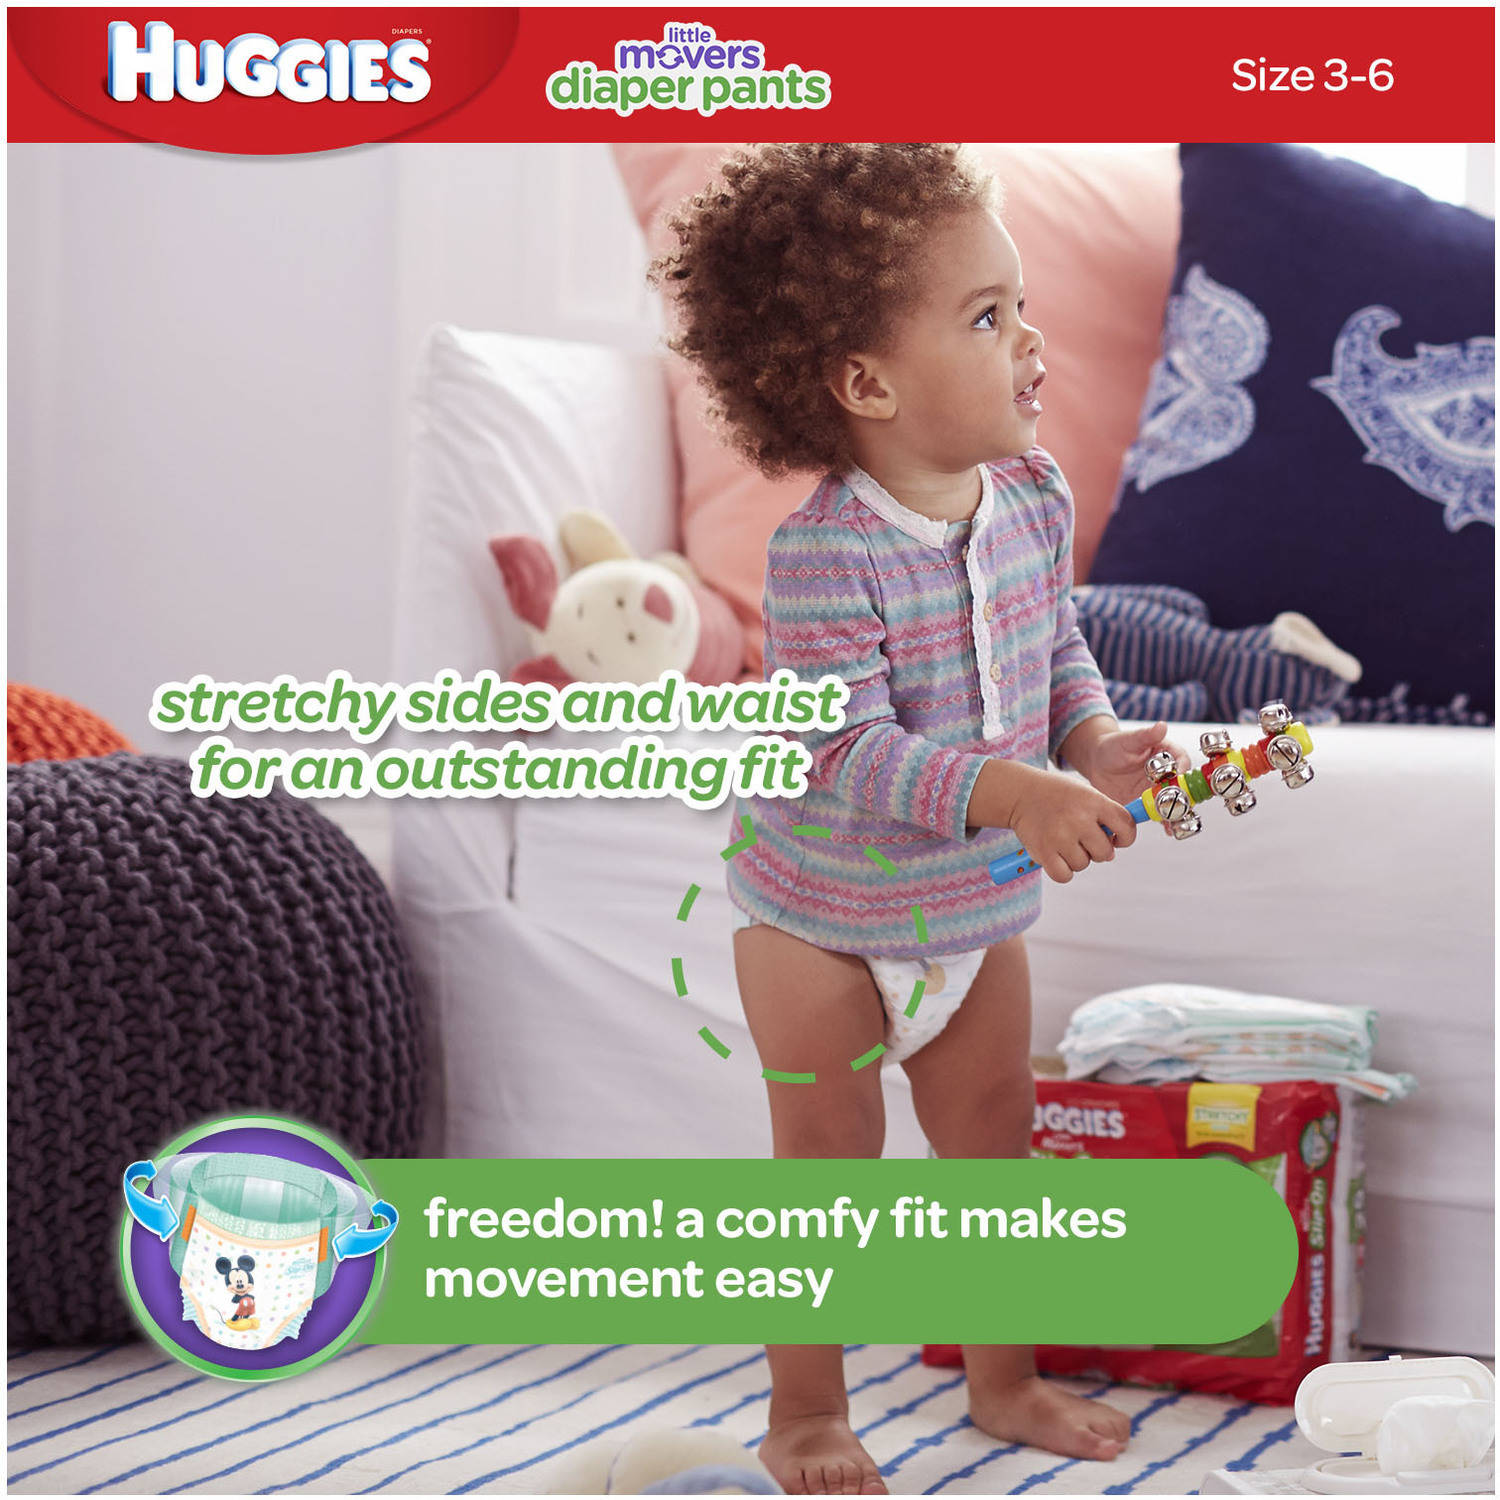 HUGGIES Little Movers Slip-On Diaper Pants, Size 4, 74 Diapers ...